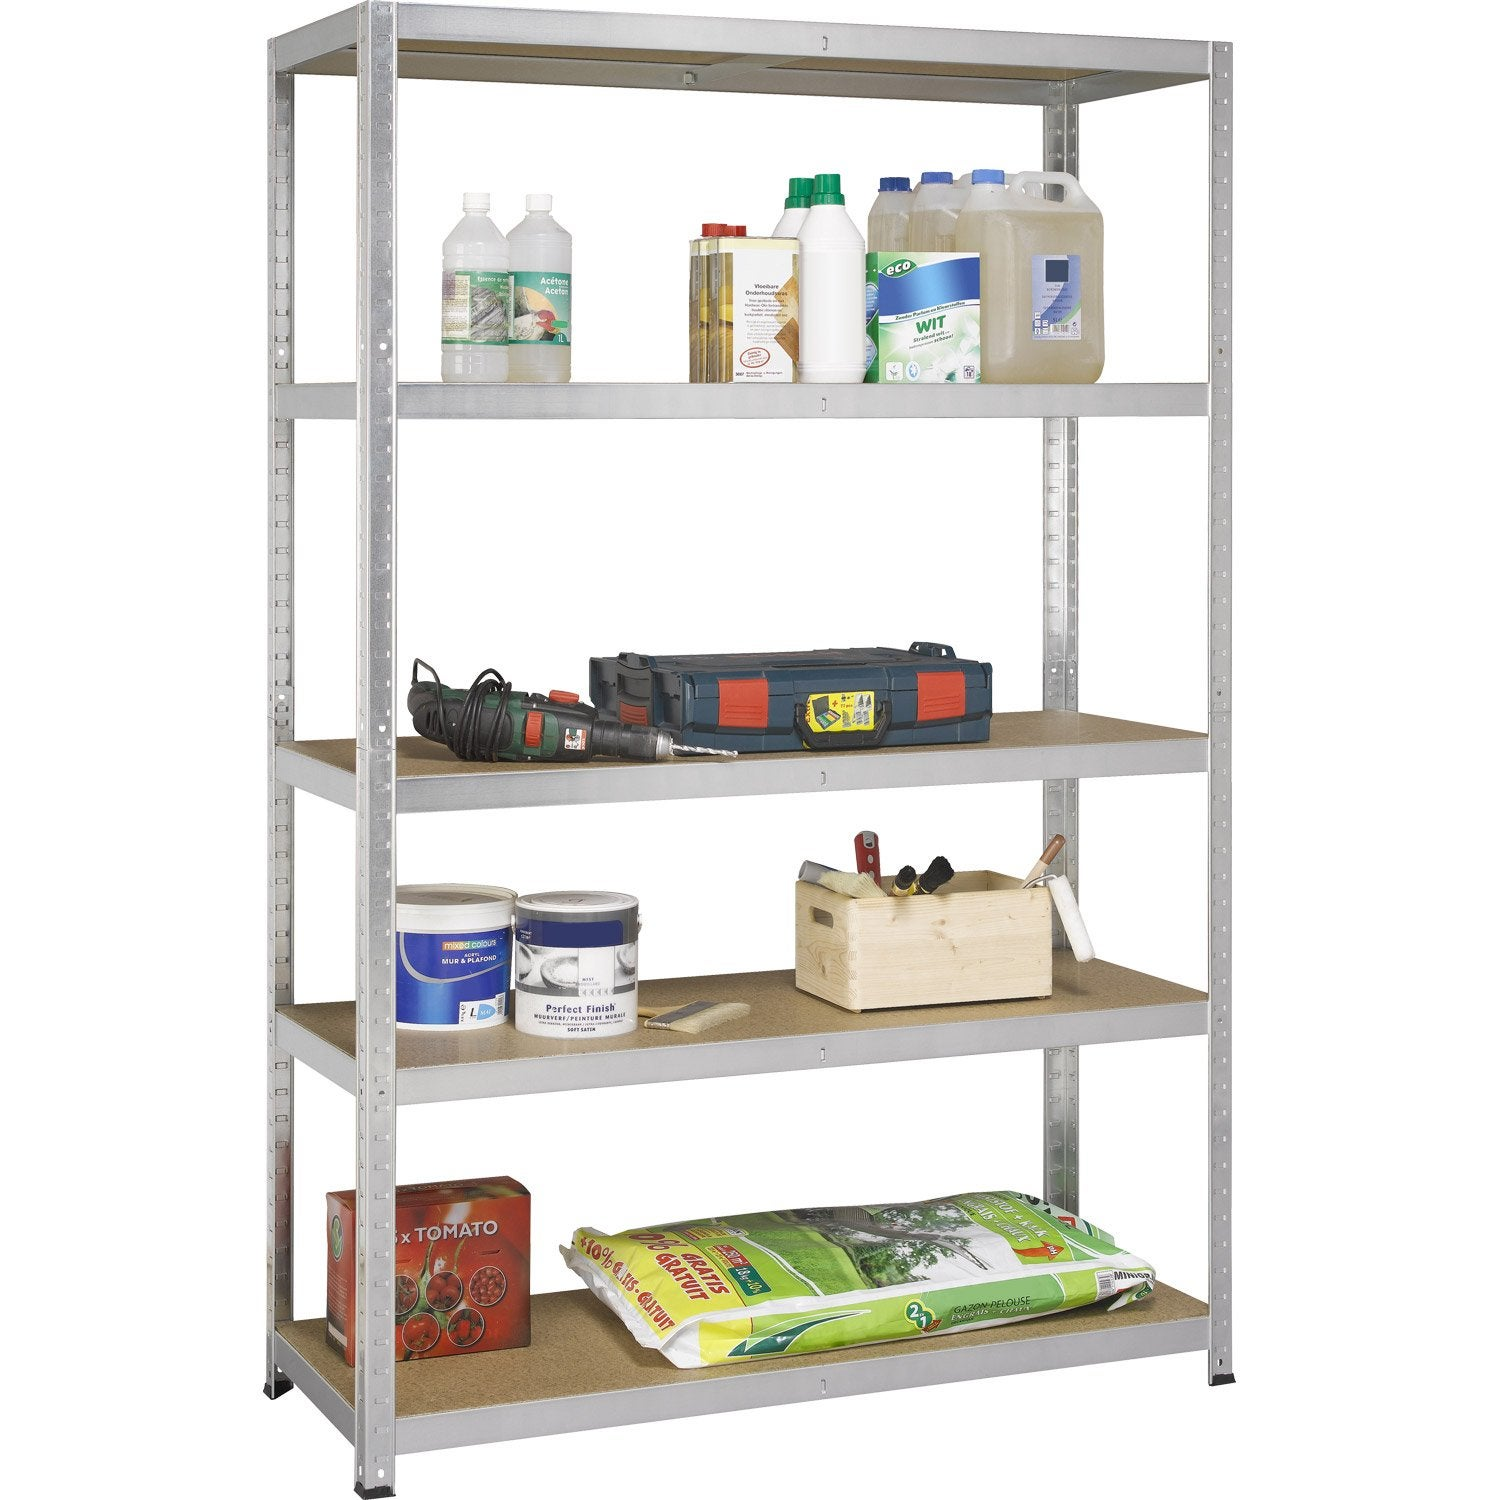 Etag re acier avasco strong 5 tablettes gris x x cm lero - Leroy merlin etagere metal ...